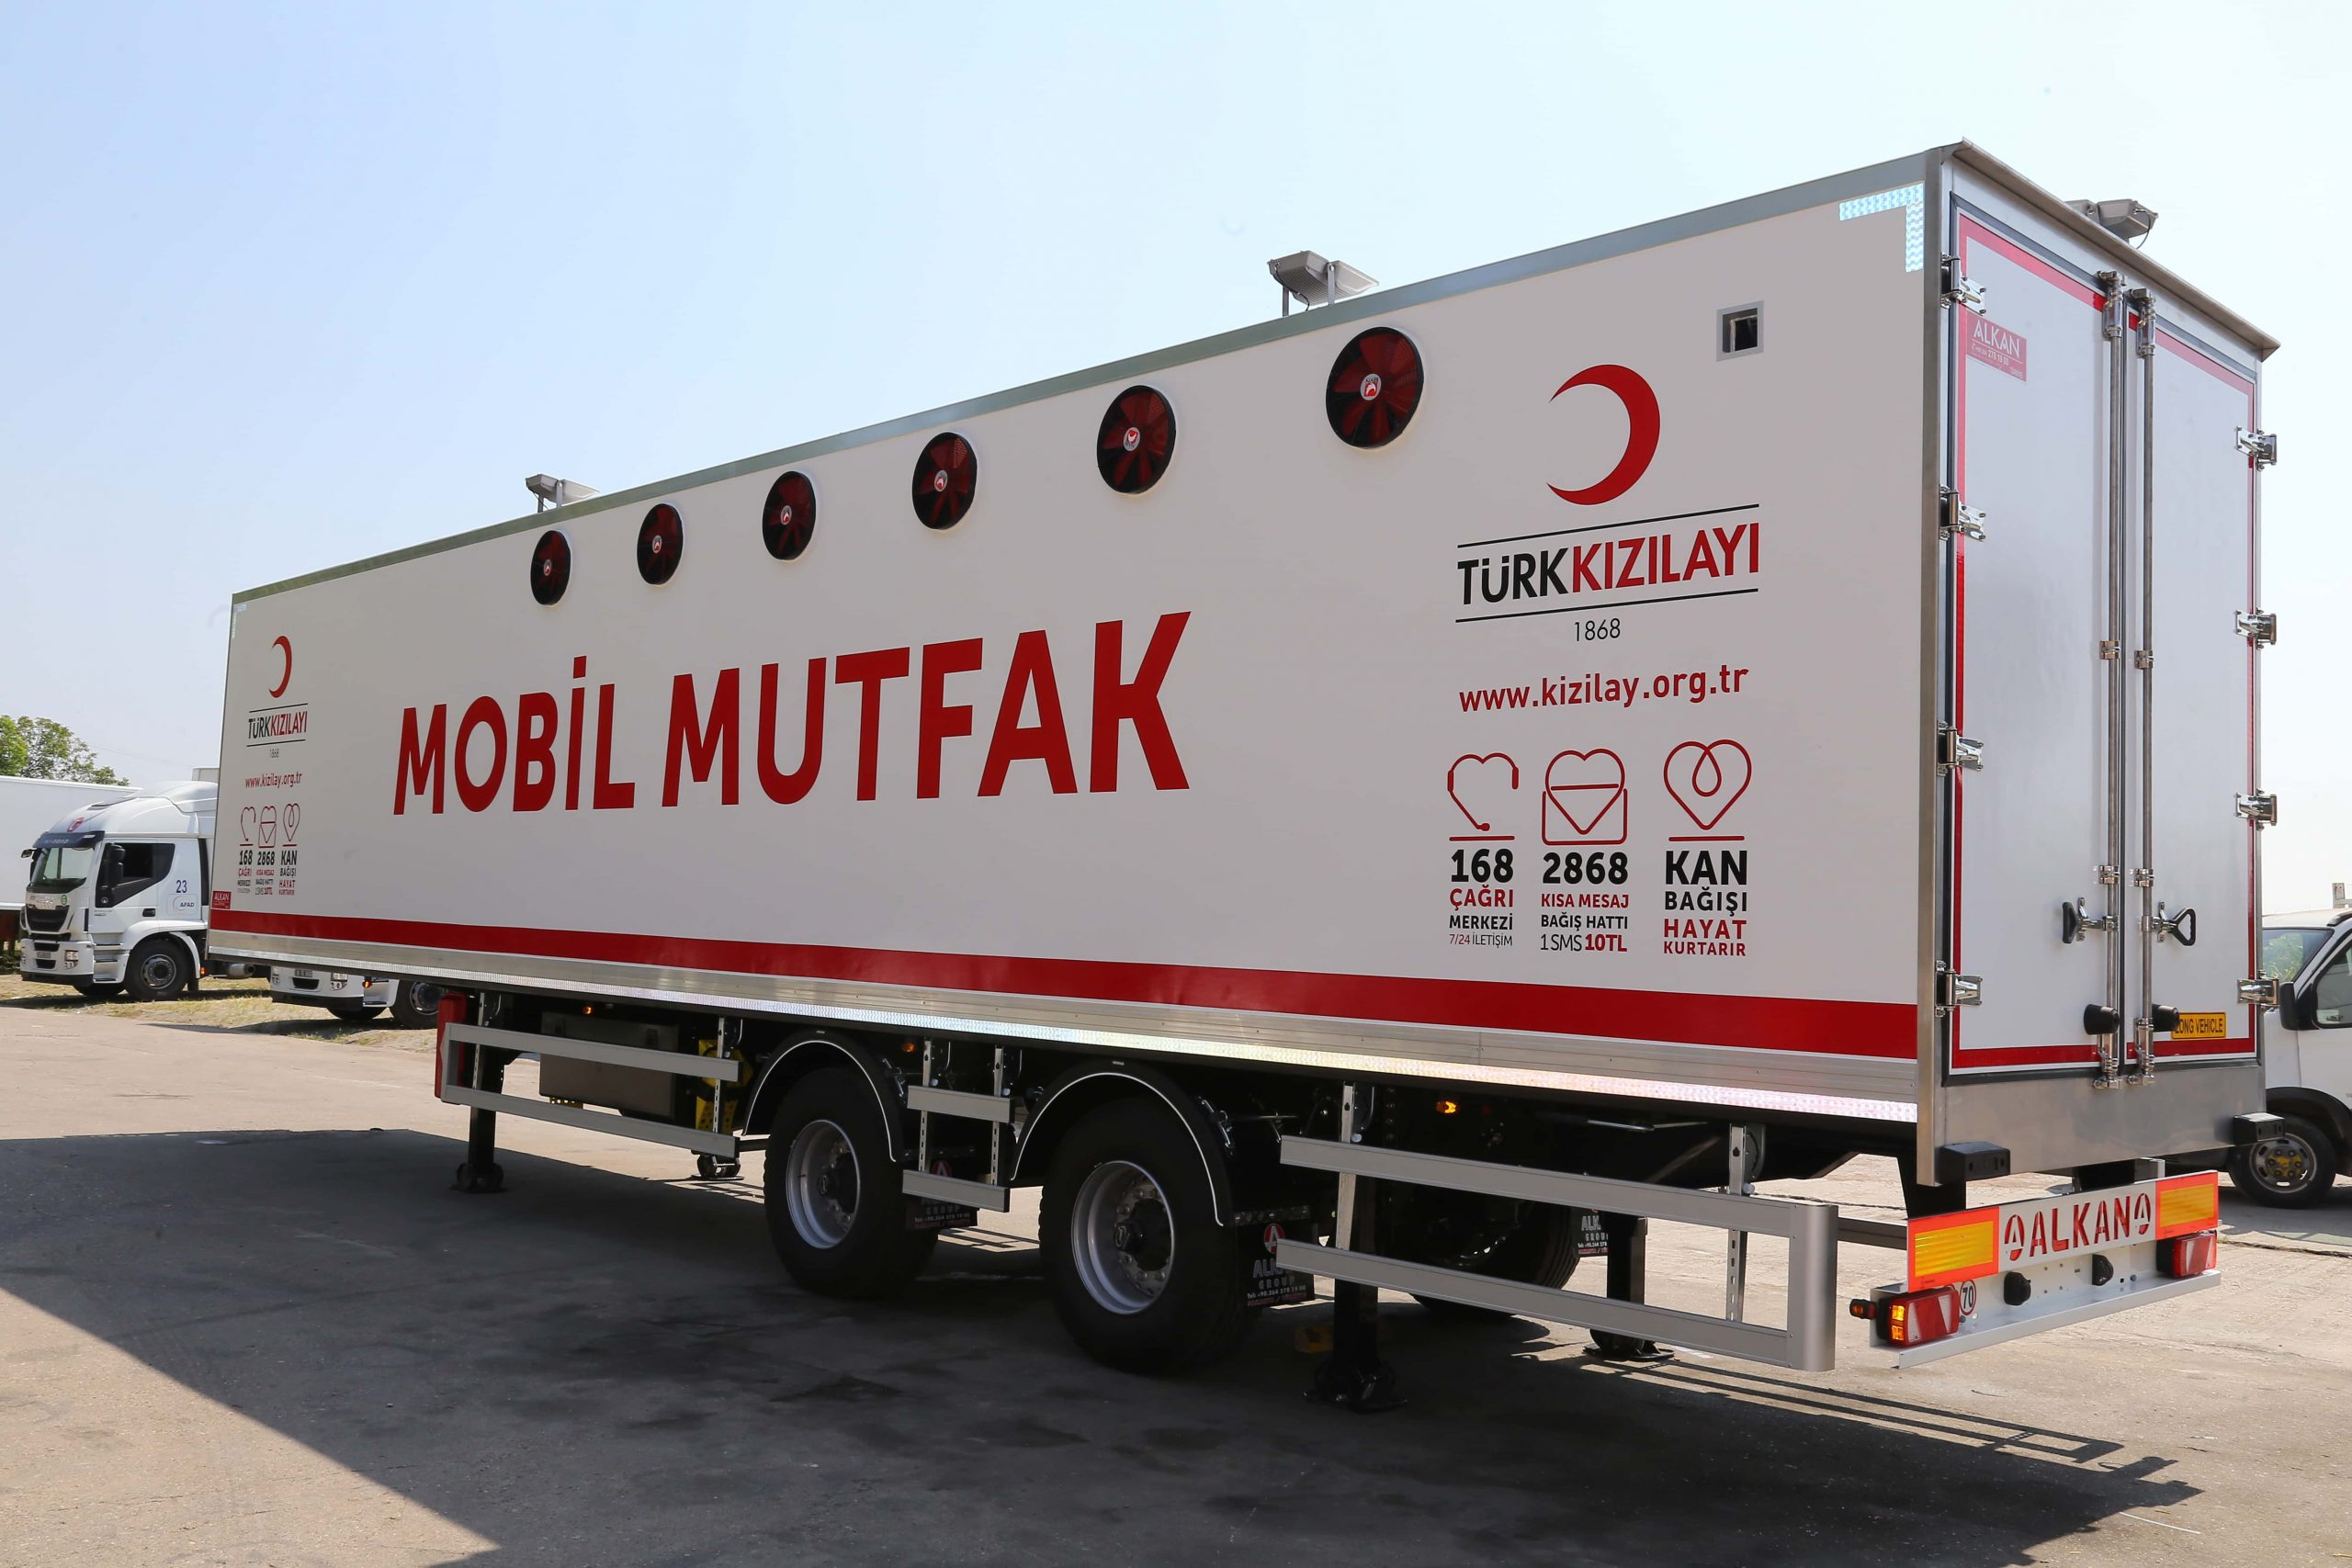 mobile-field-kitchen-trailer-vehicle-scaled.jpg